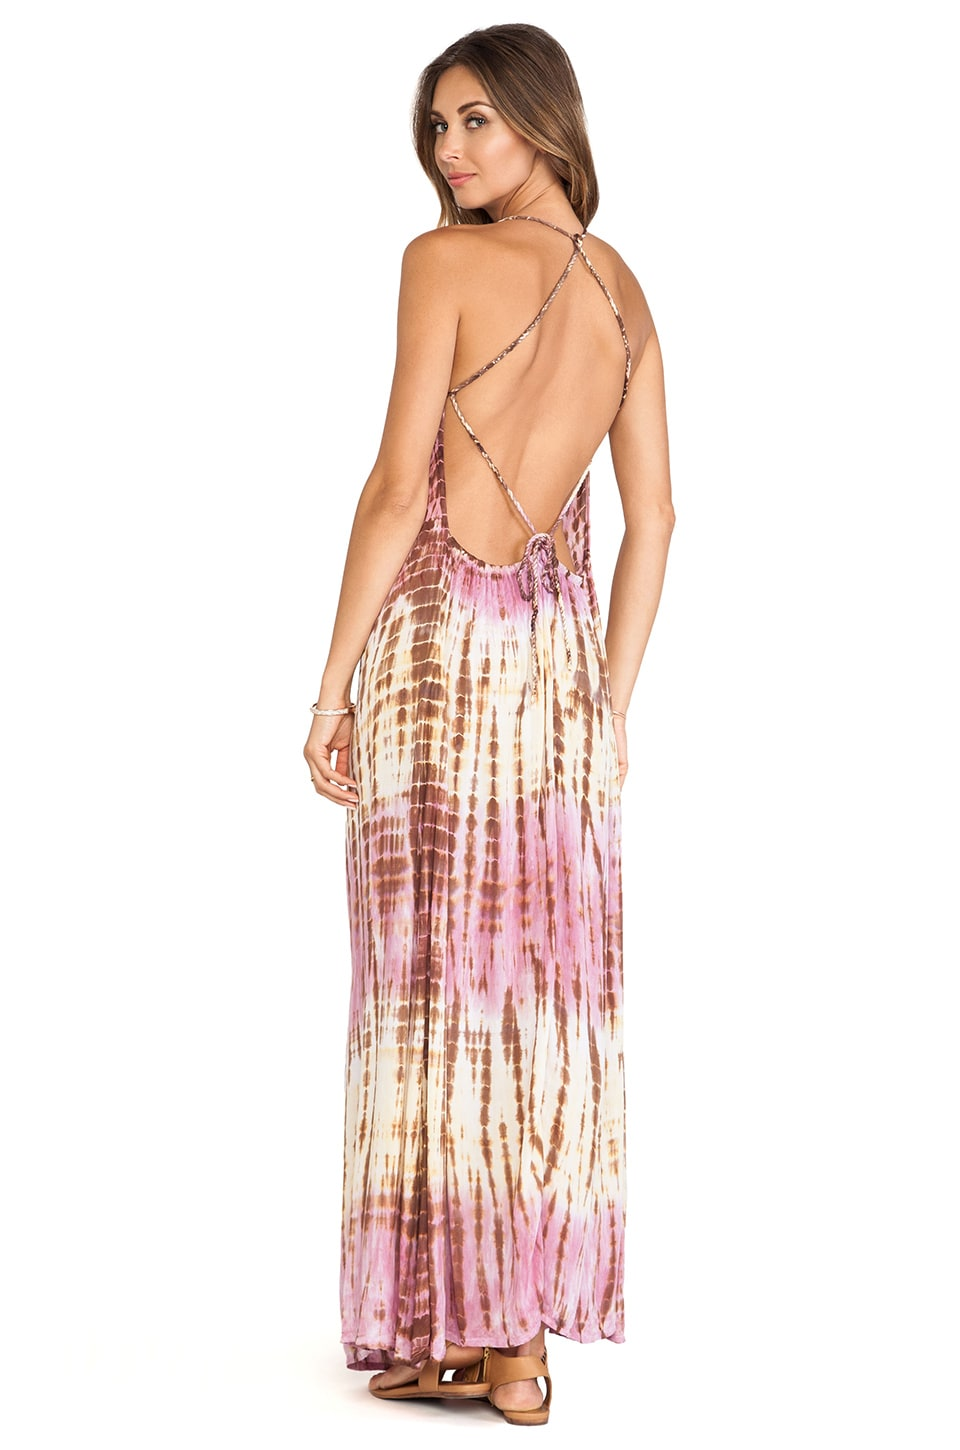 Tiare Hawaii Addiction Maxi Dress in Pink Cream Tie Dye